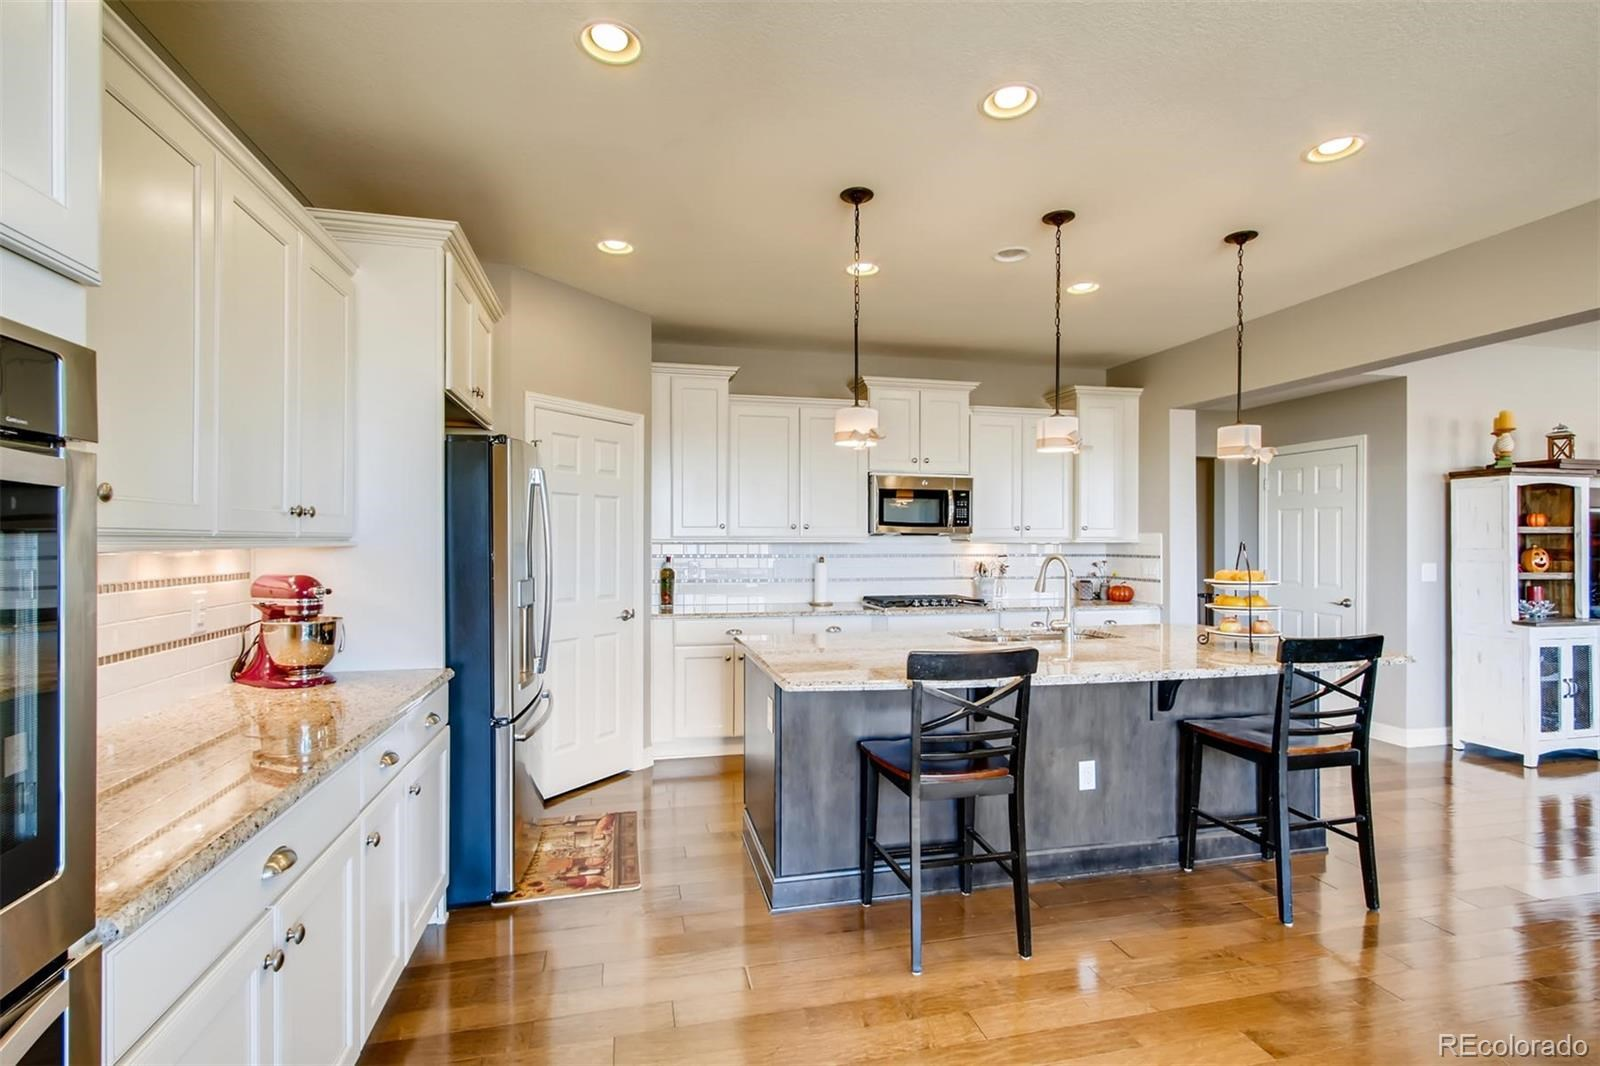 MLS# 8727284 - 11 - 15429 W 95th Place, Arvada, CO 80007